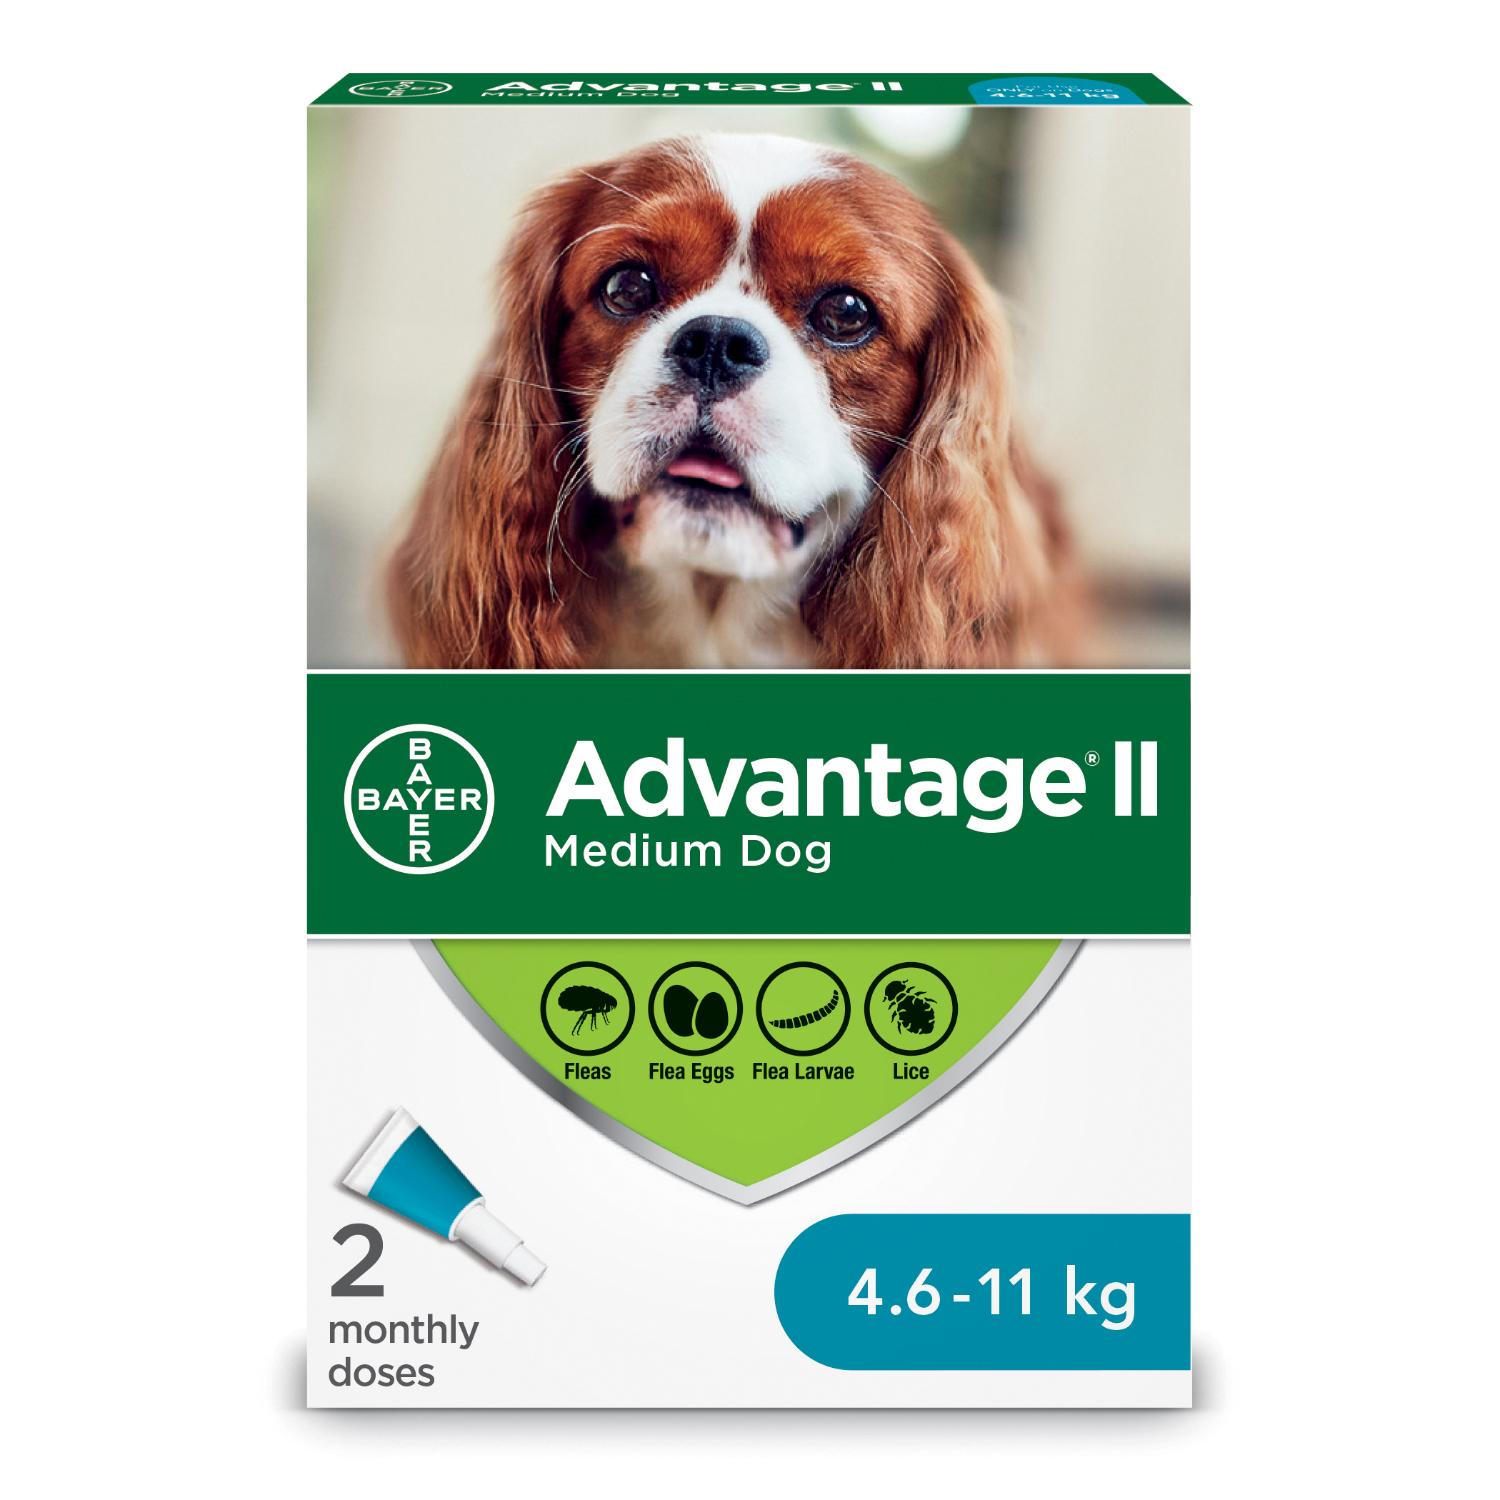 Bayer Advantage II Flea Protection for Medium Dogs 4.6-11-kg, 2-pk